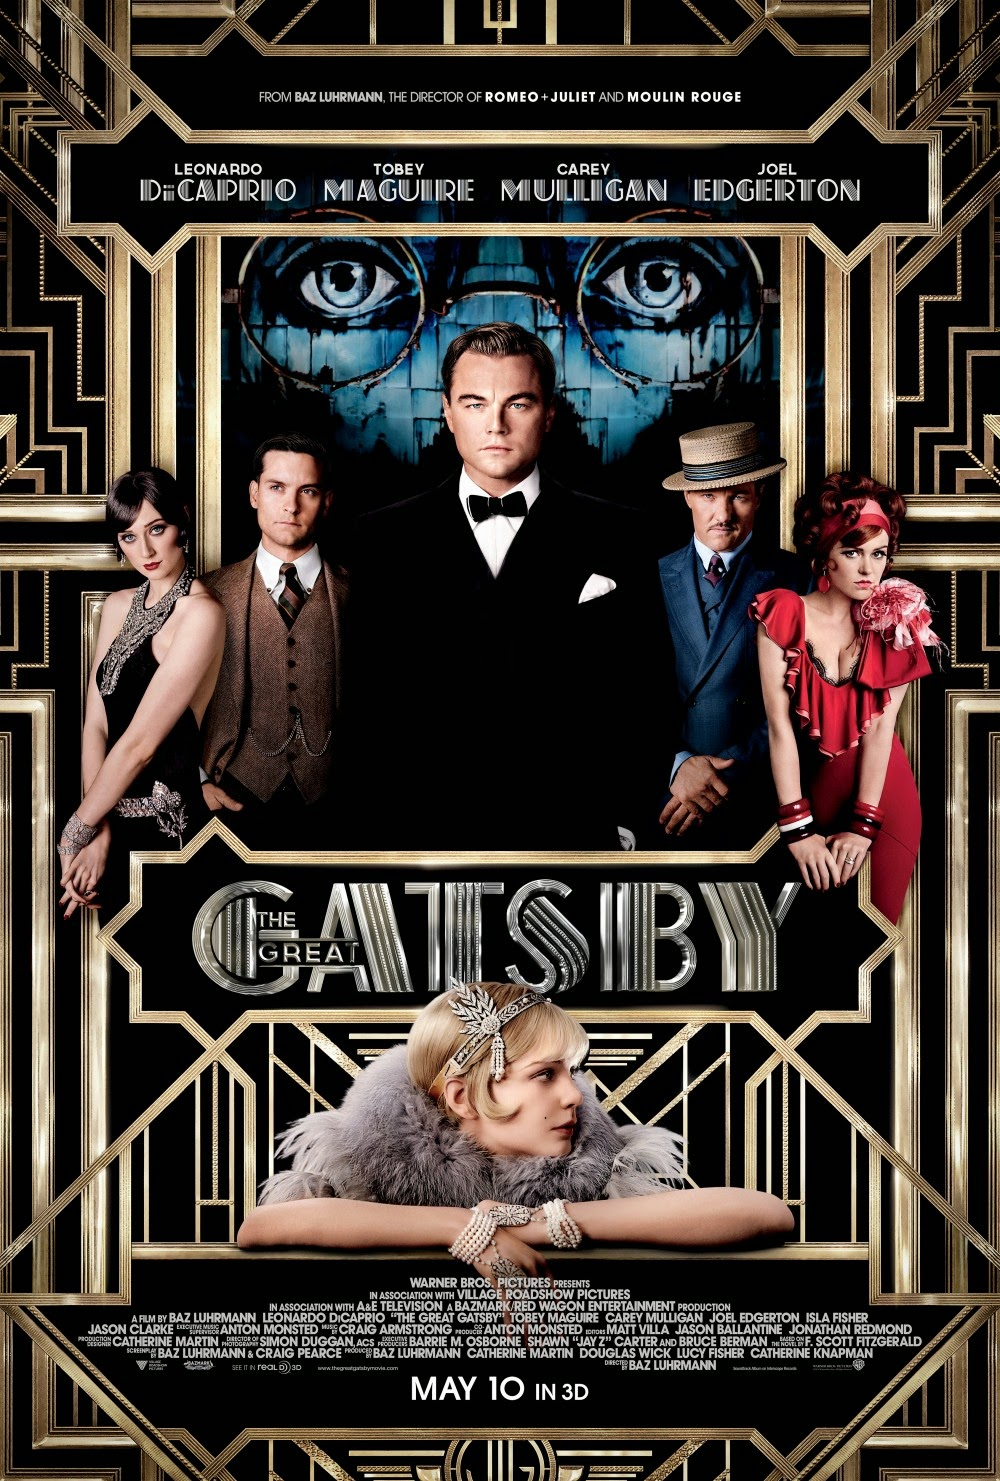 http://discover.halifaxpubliclibraries.ca/?q=title:great%20gatsby